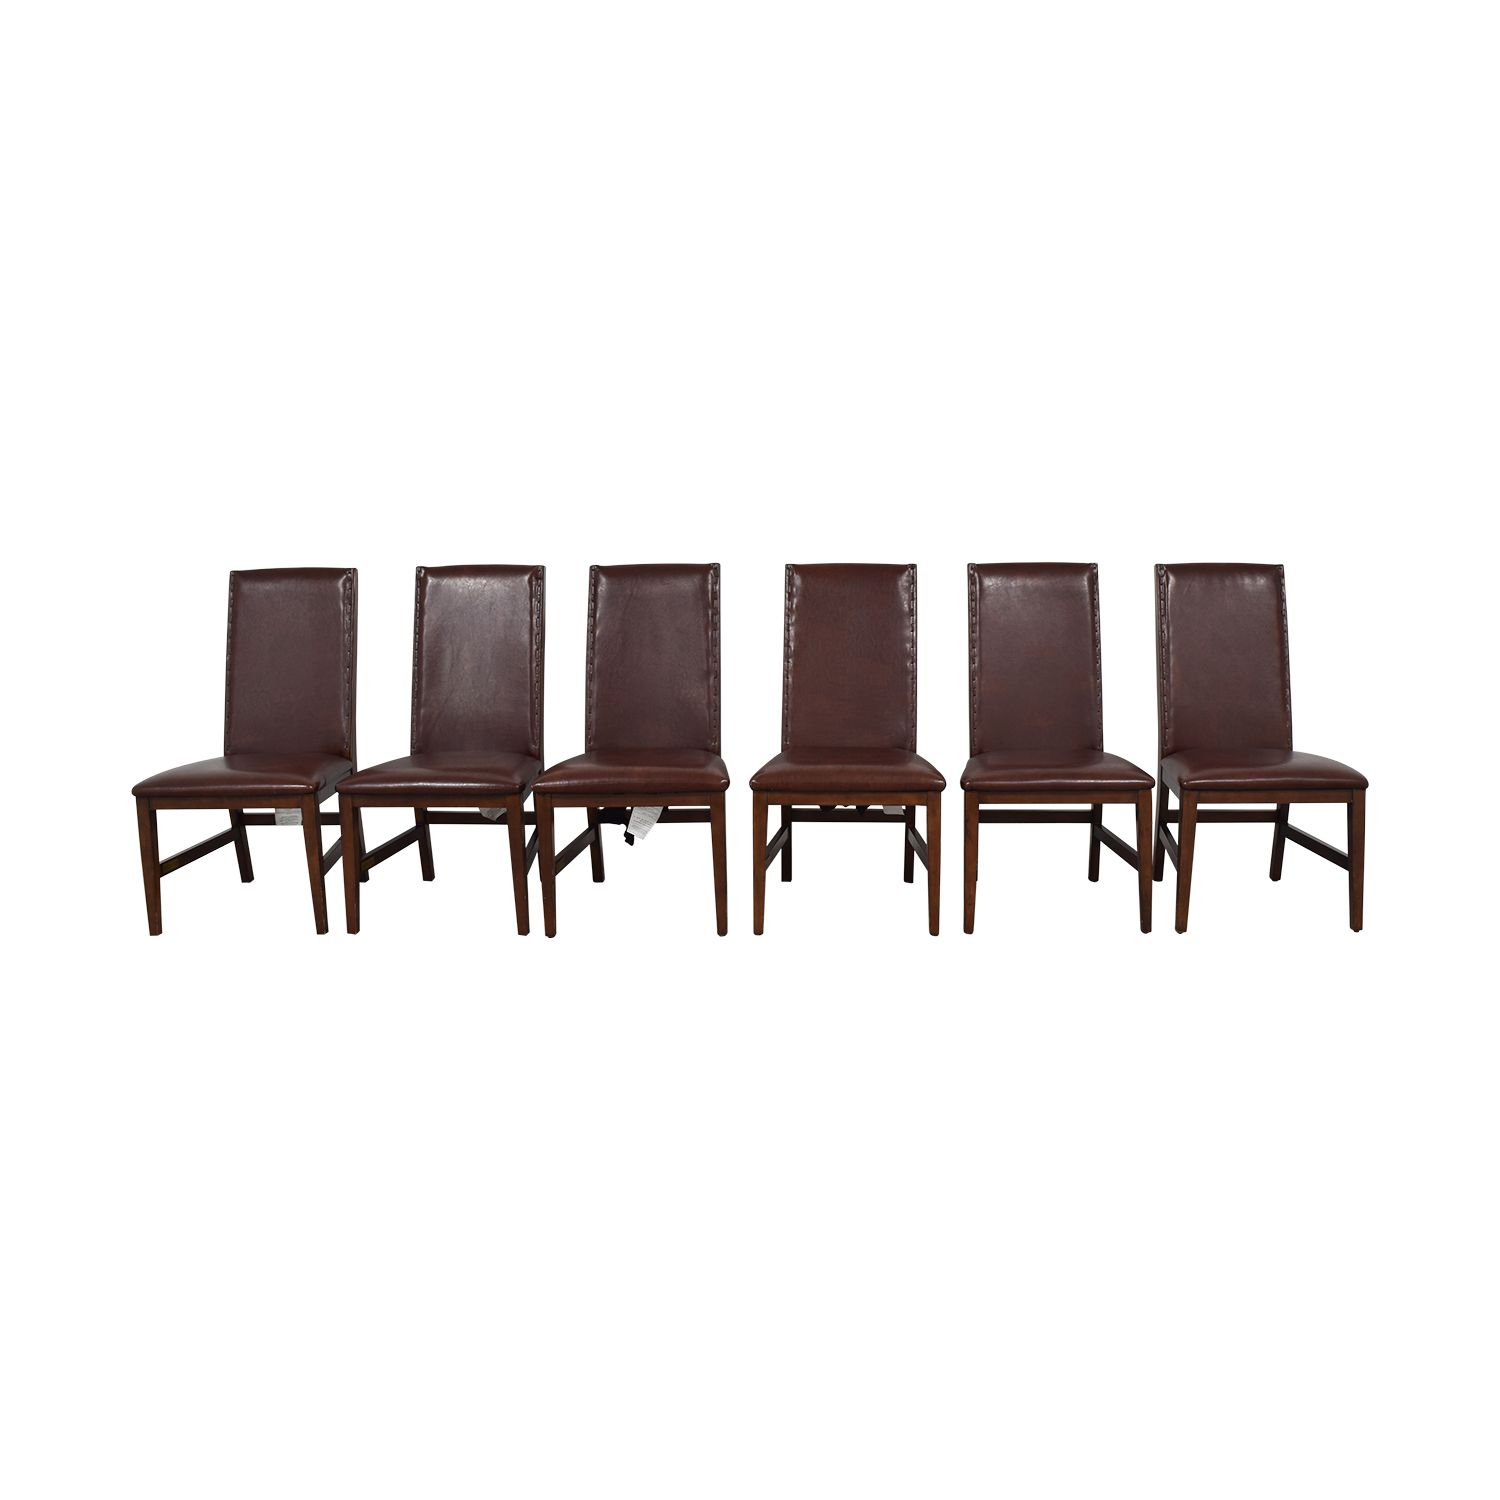 Nichols & Stone Nichols & Stone Brown Dining Chairs BROWN